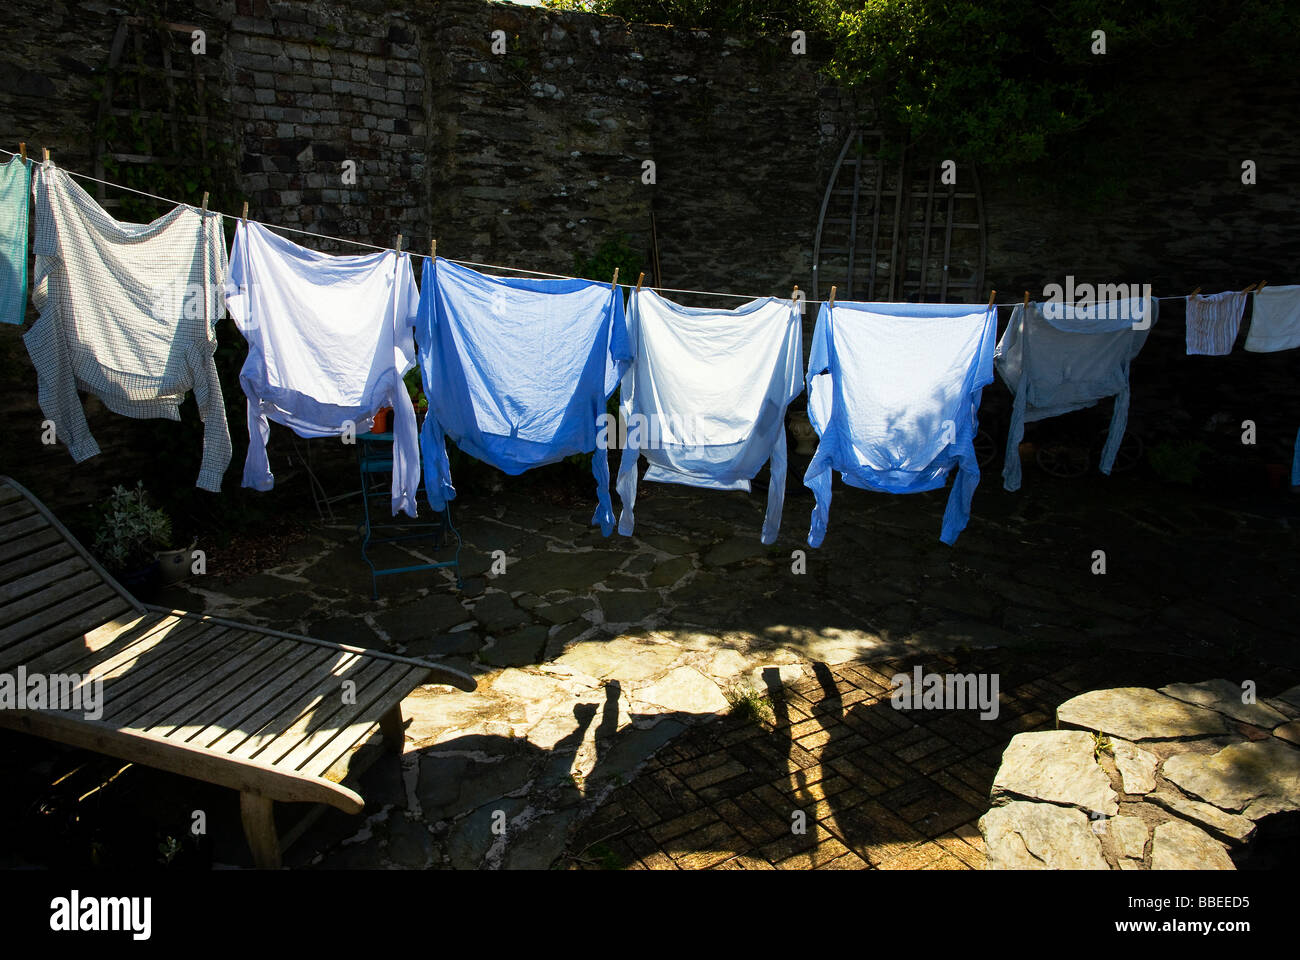 Mens shirts on a traditional washing line in sunlight - Stock Image